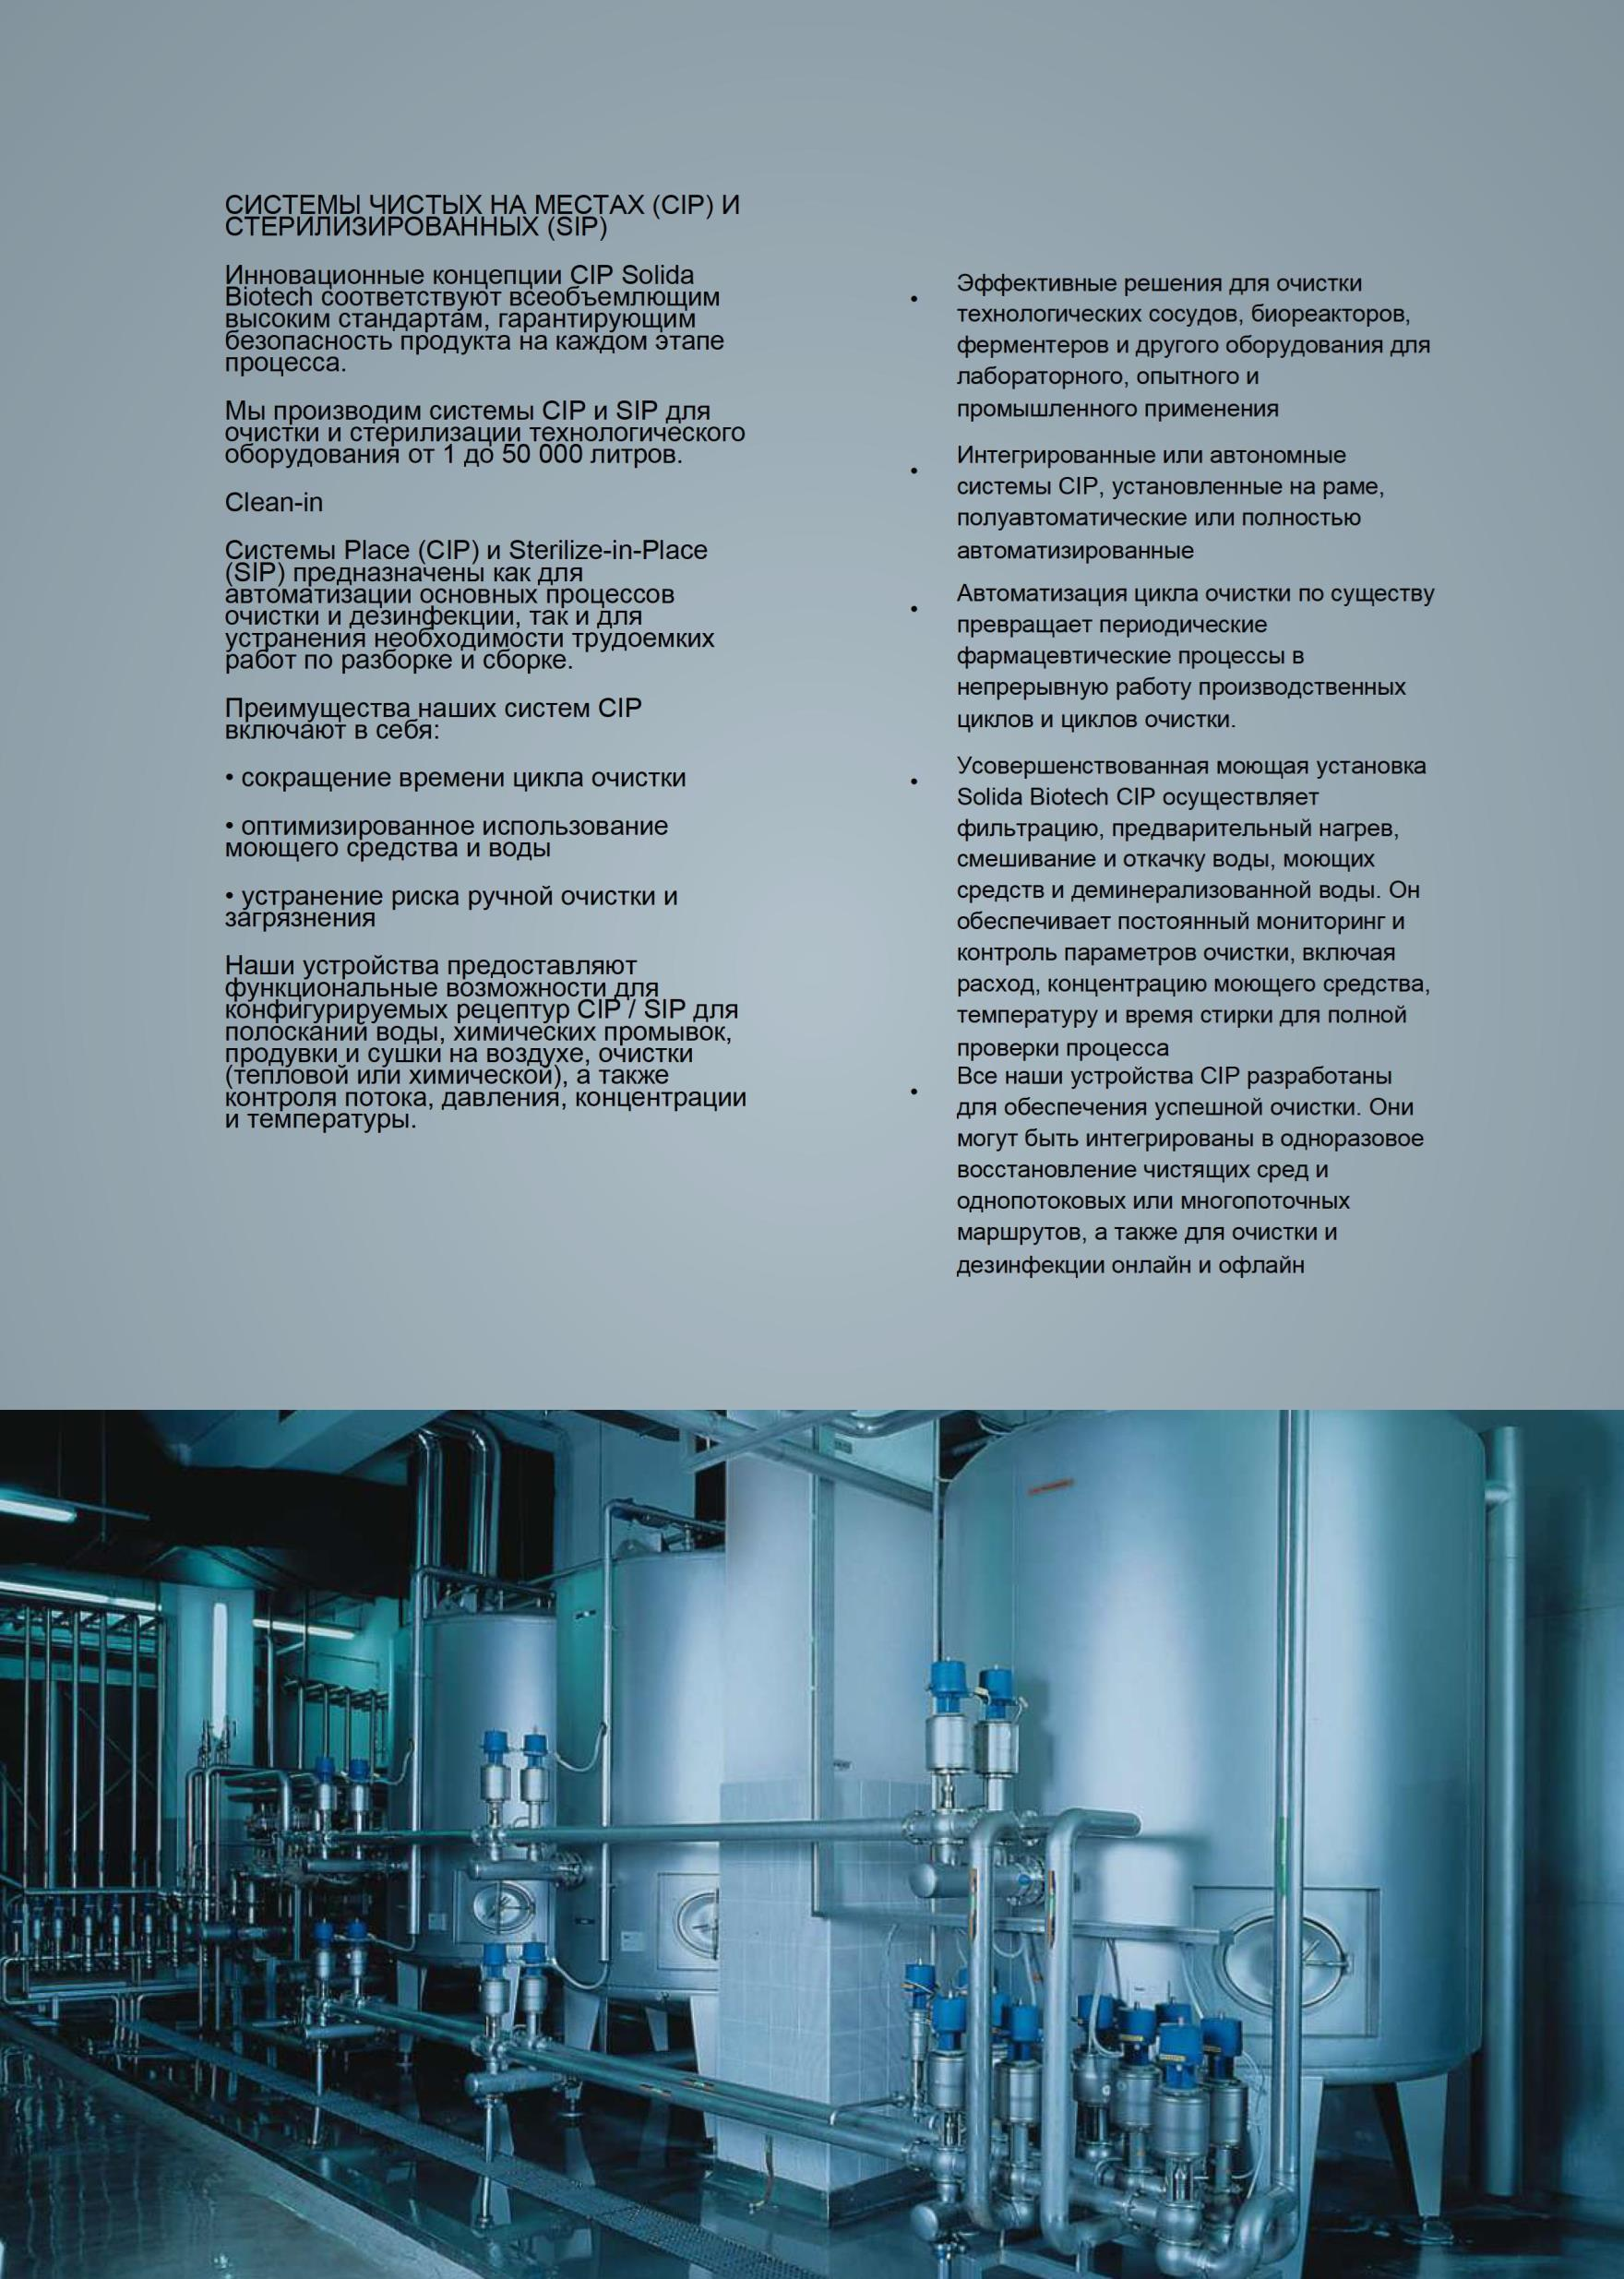 General Catalogue Solida Biotech GmBH2_compressed (2 - 0020